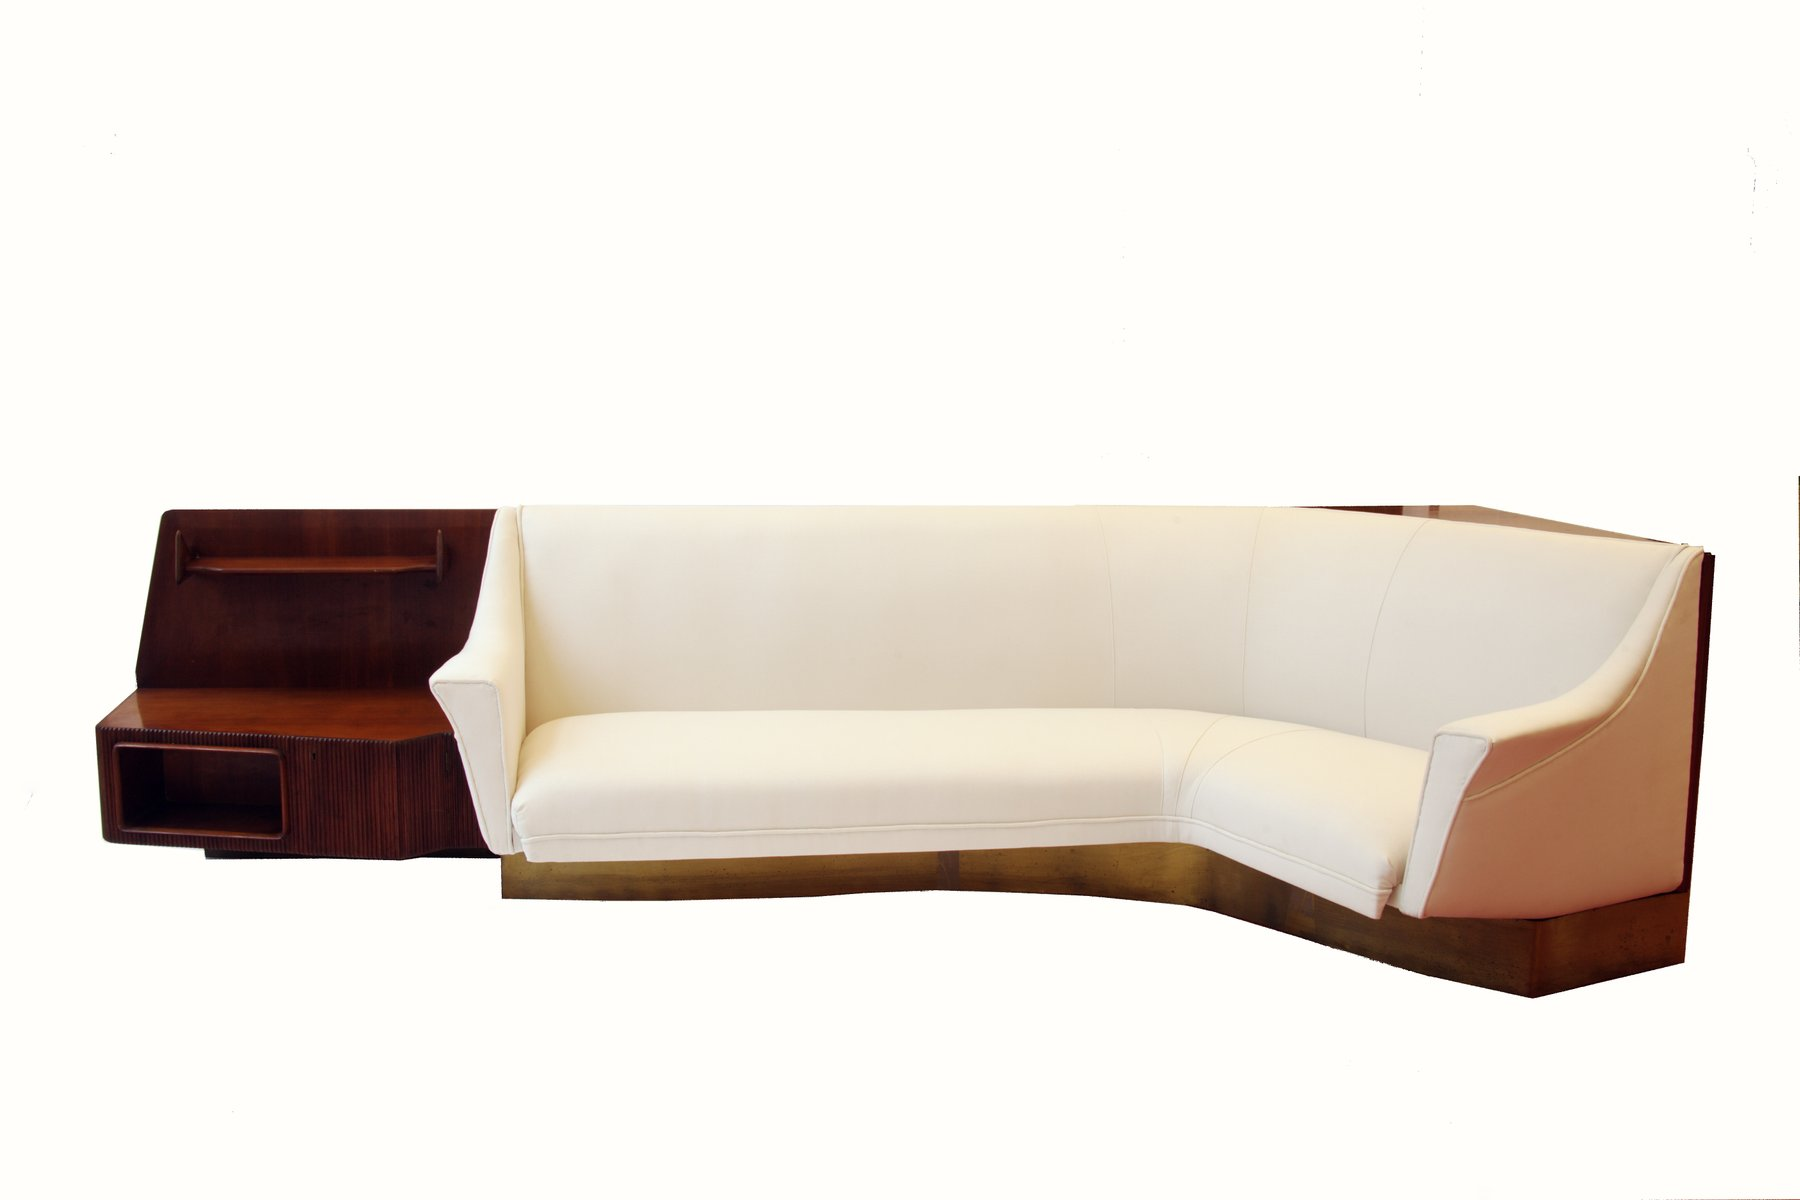 Vintage Curved Conversation Sofa And Shelves, 1940s For Sale At Pamono